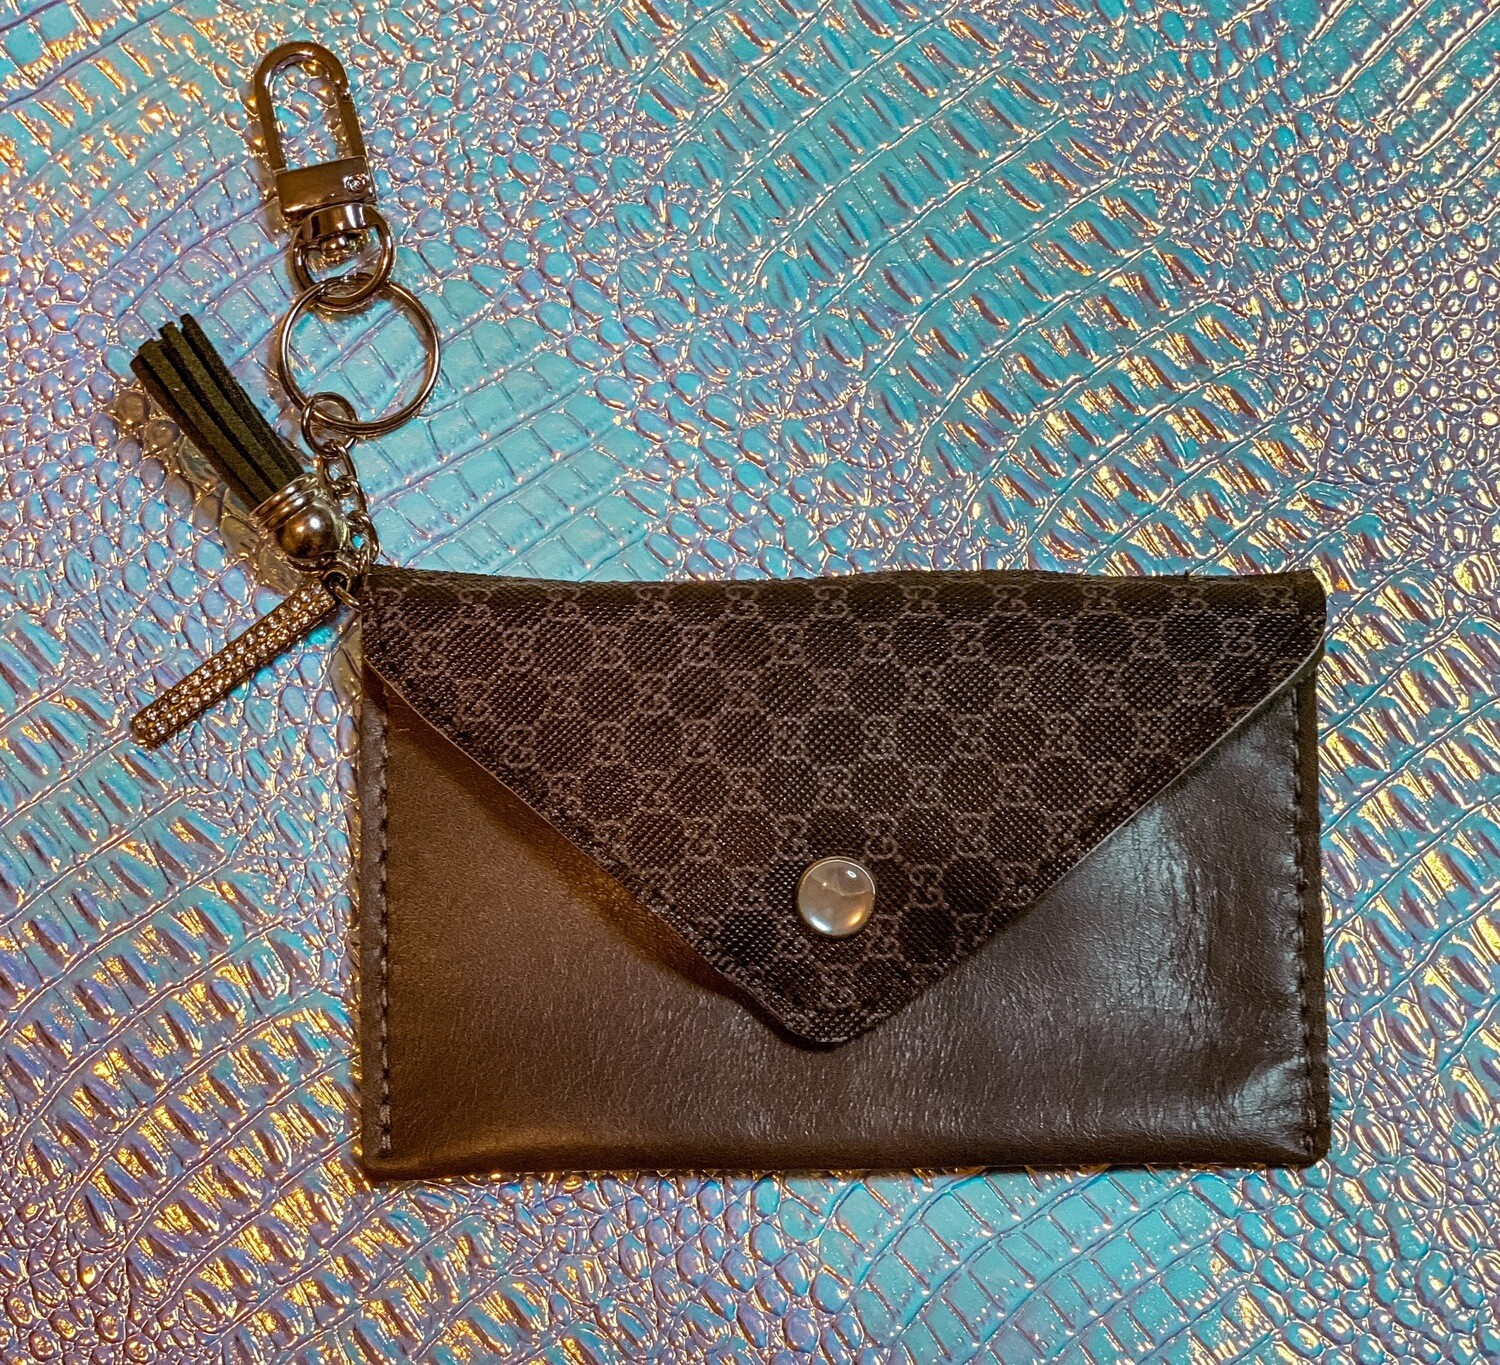 Authentic Gucci Jewel Cardholder